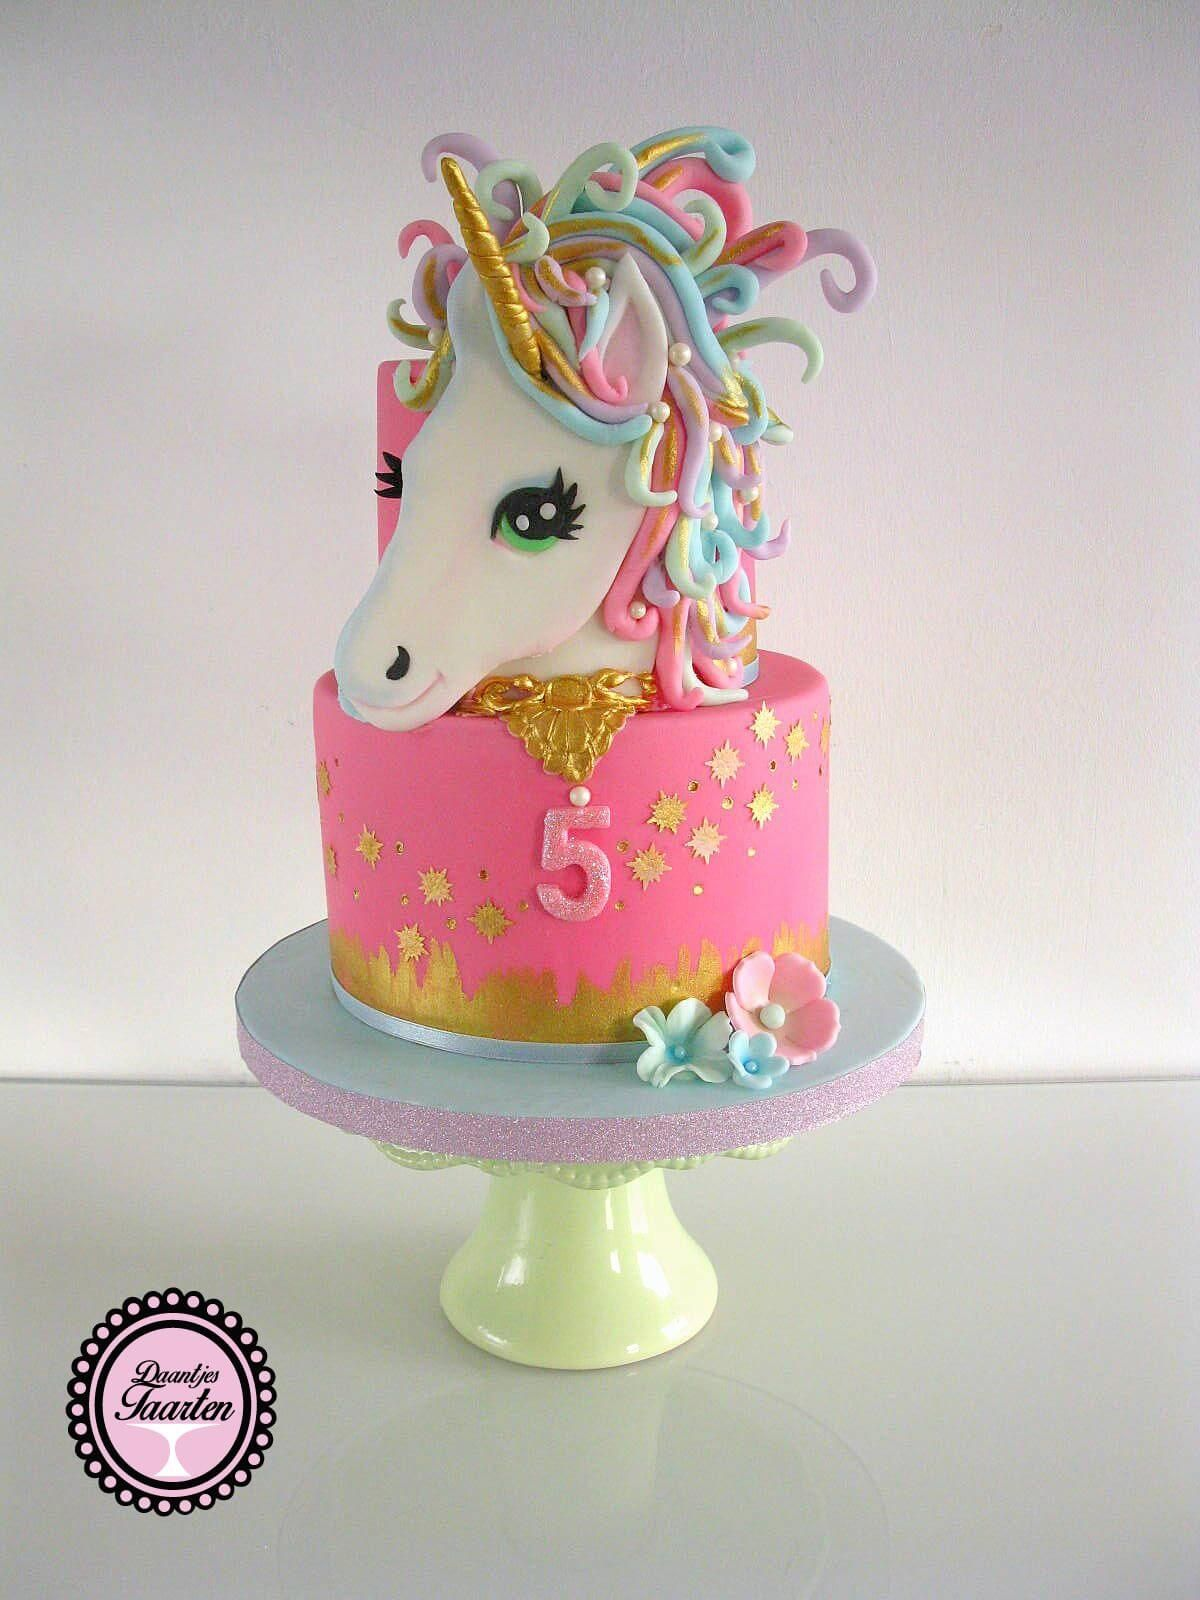 kinder taart Unicorn kindertaart | Eenhoorn | Pinterest | Cake, Girl cakes and Food kinder taart